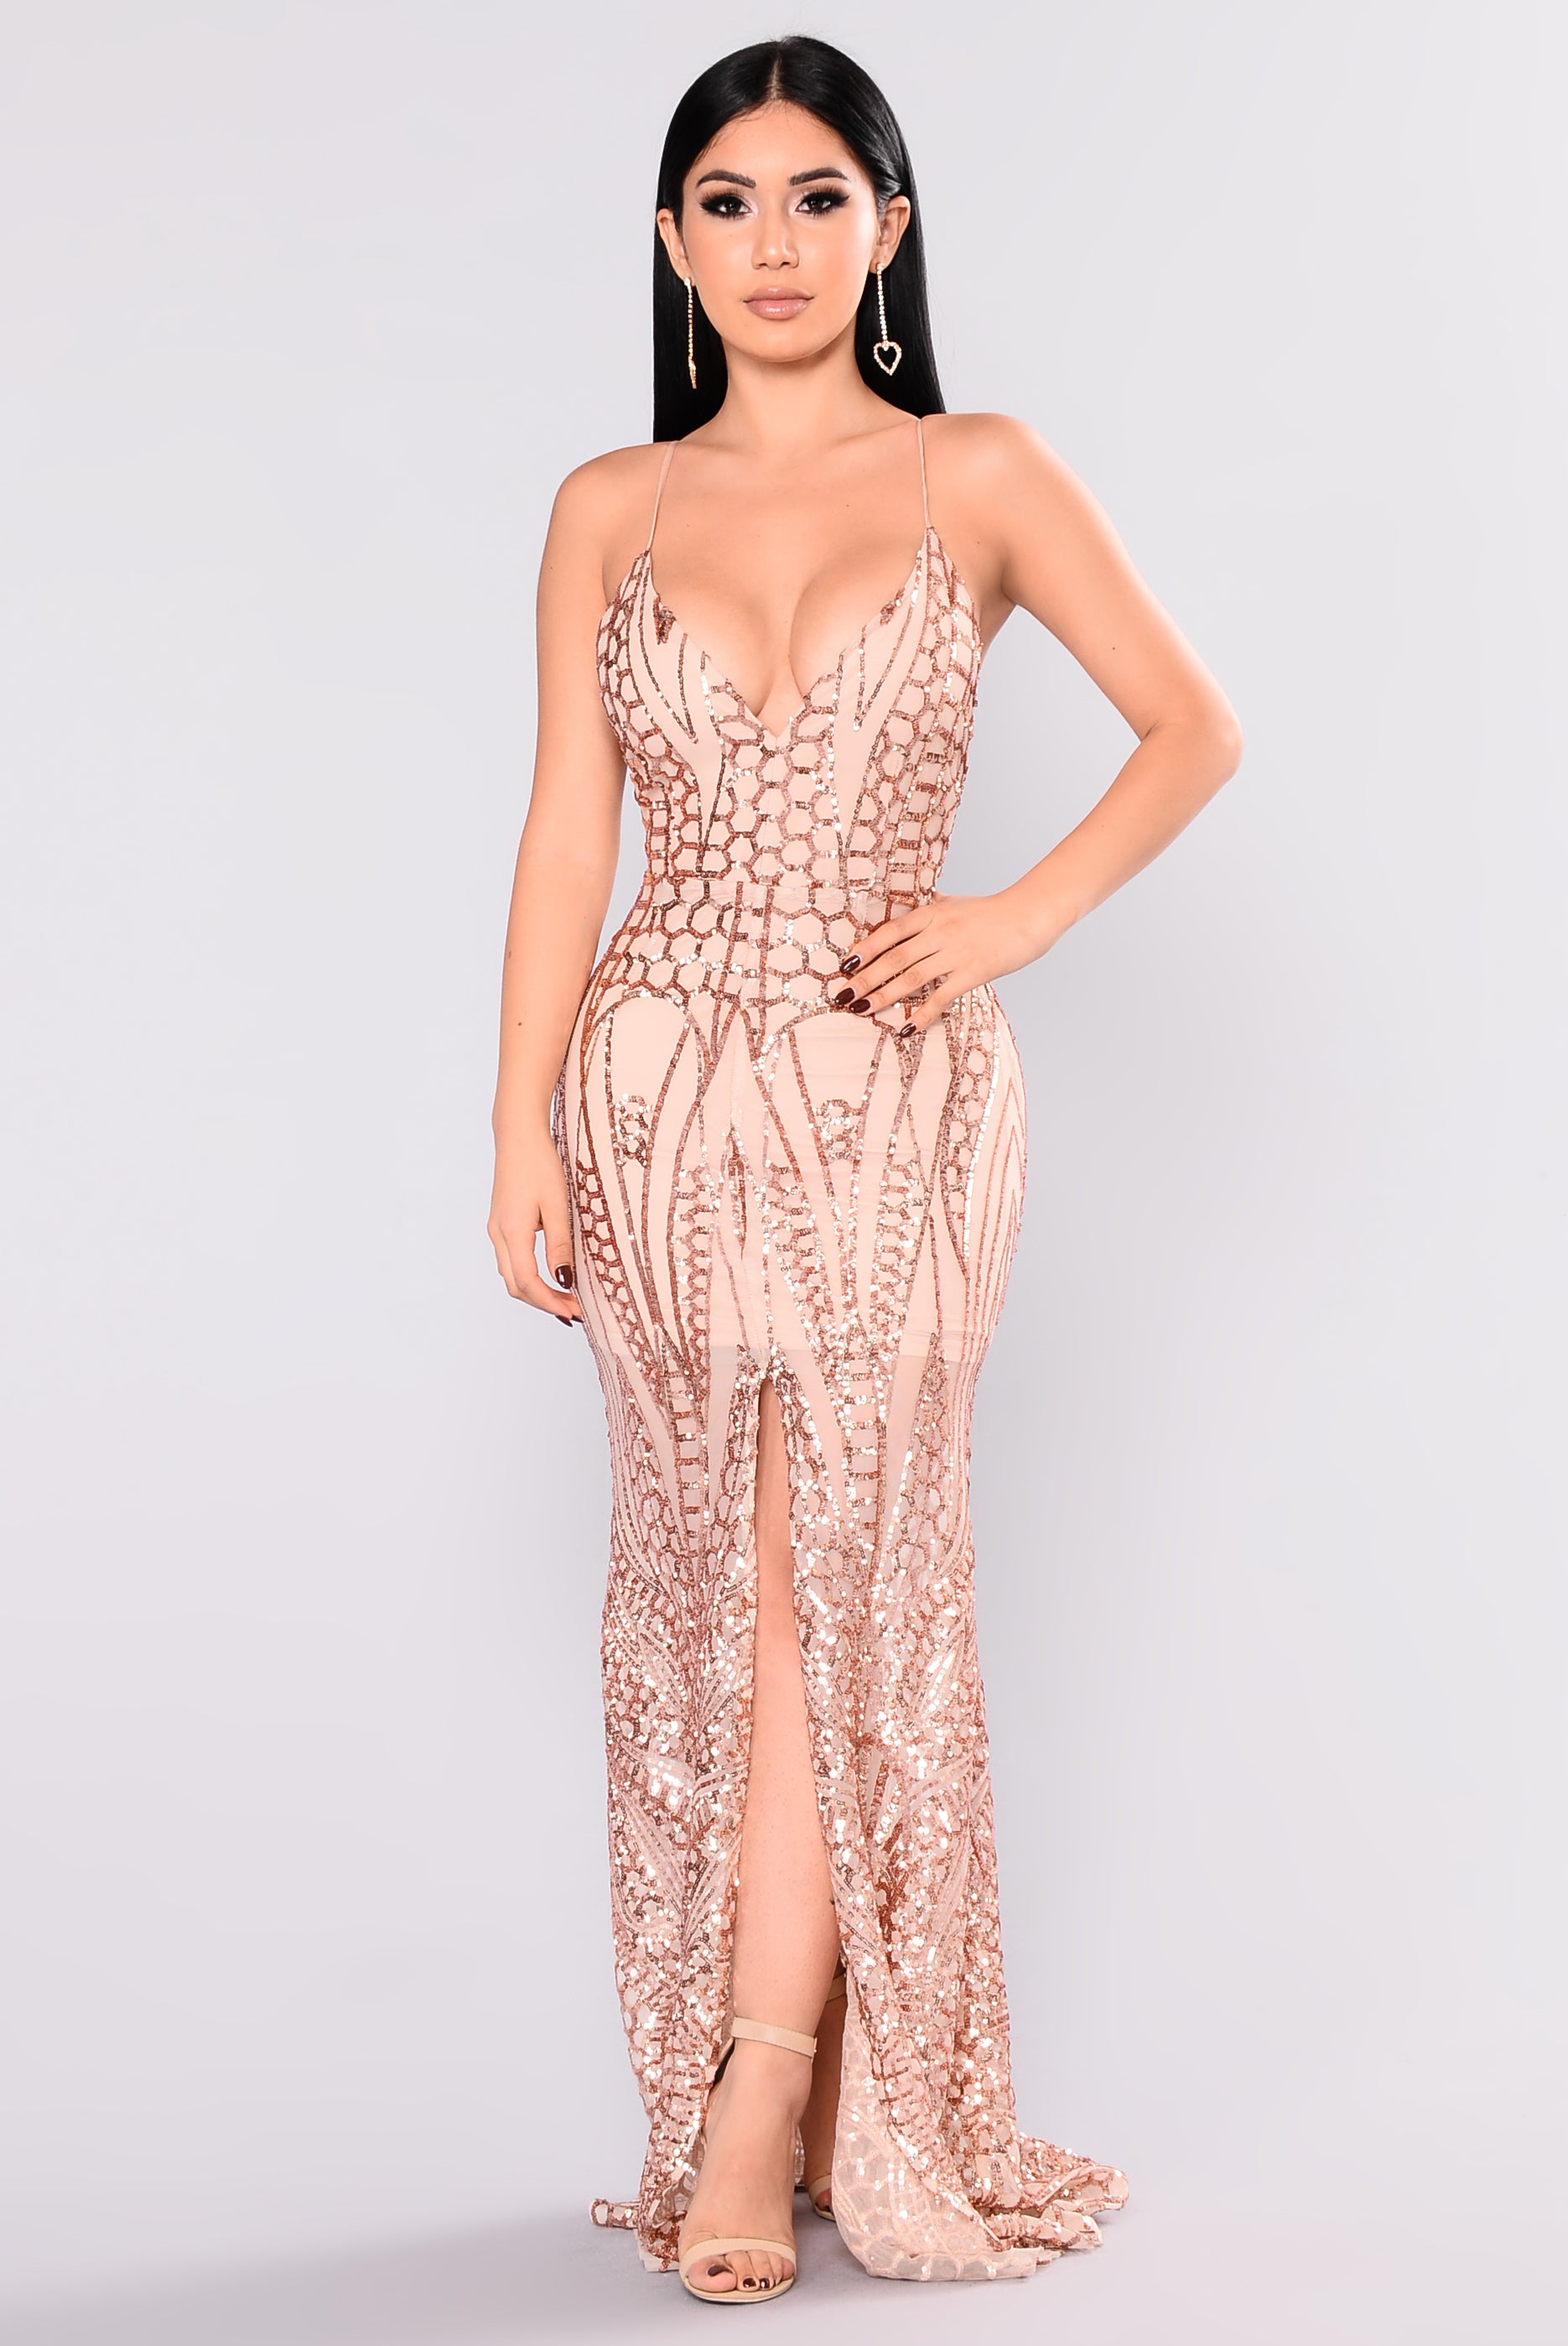 b12f9d9e0614 All Over The World Sequin Dress - Rose Gold